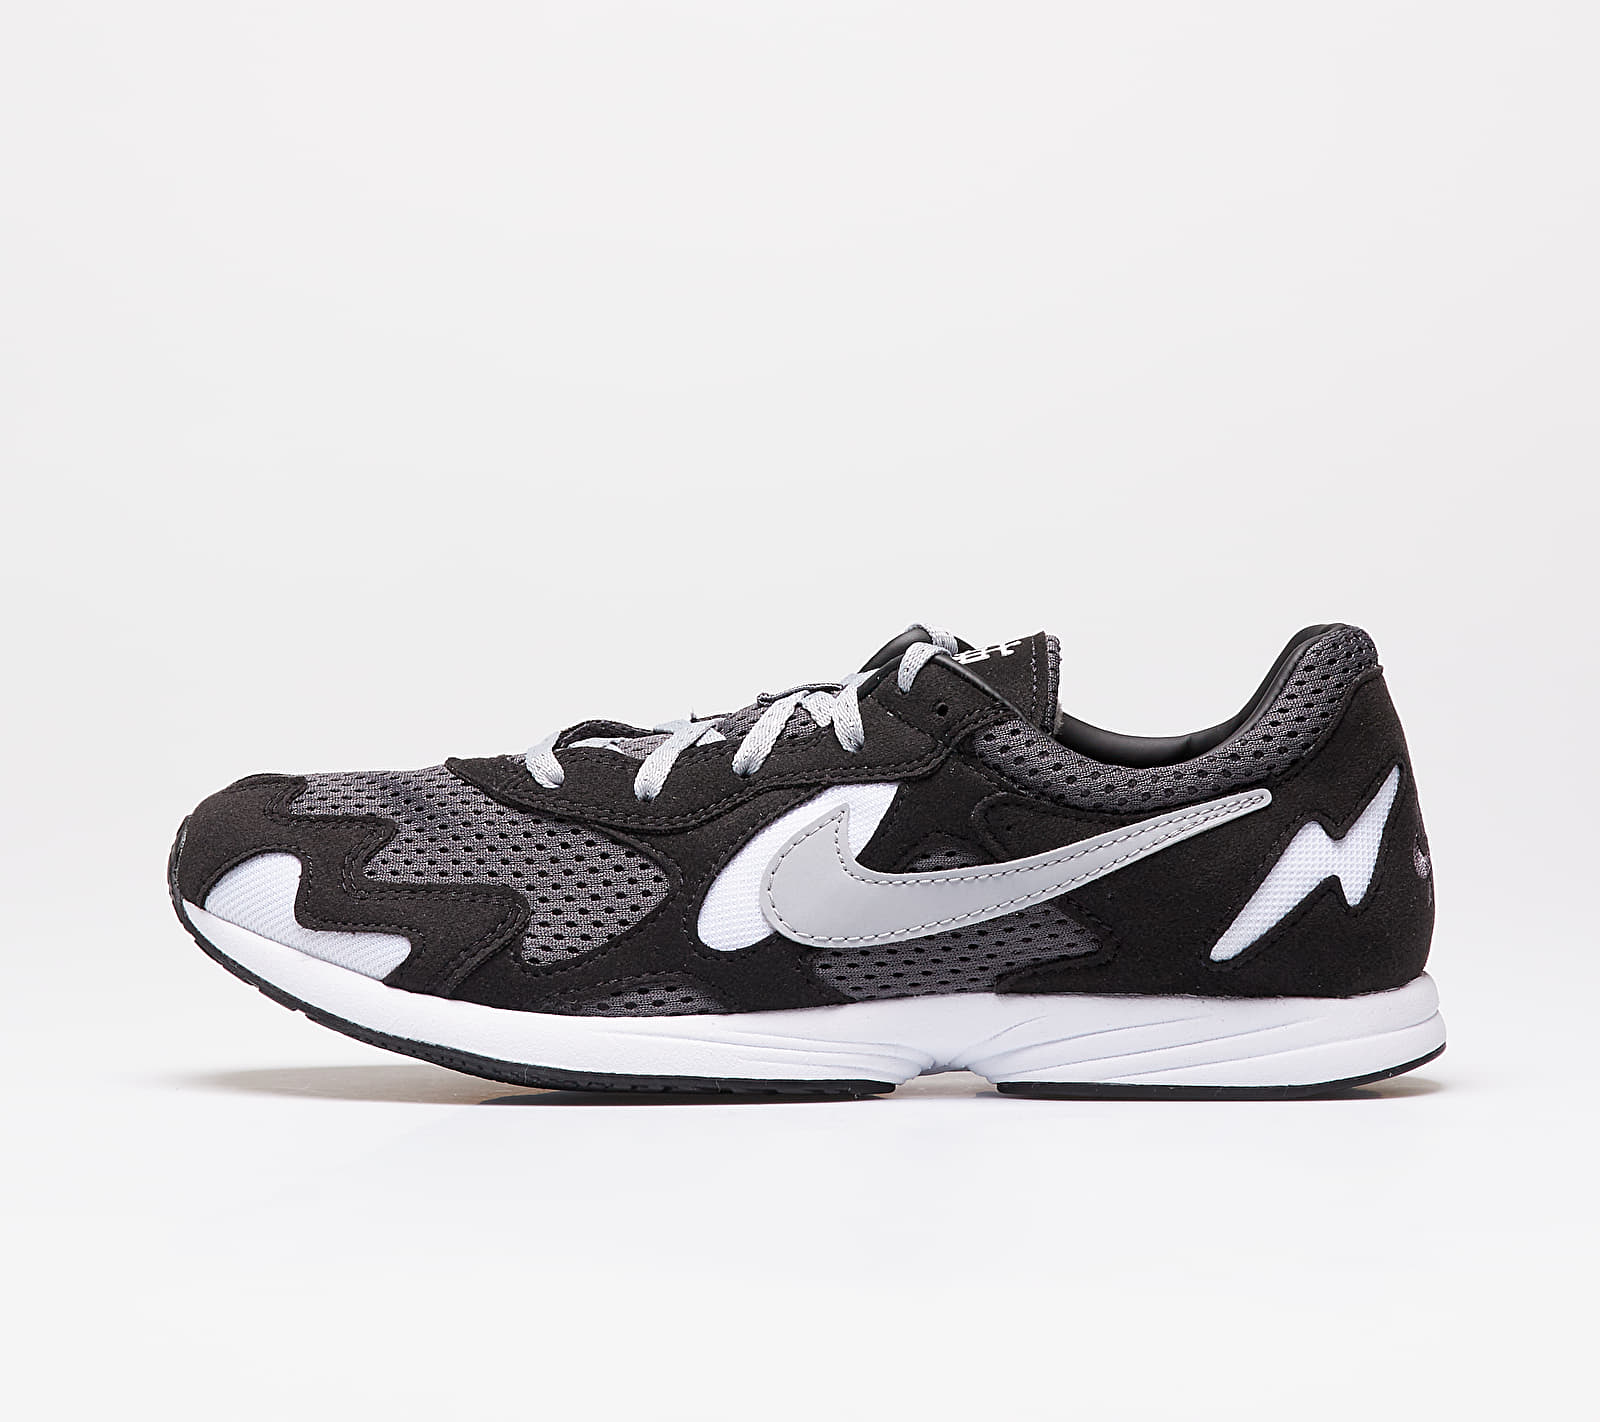 Nike Air Streak Lite Black/ Wolf Grey-Dark Grey-White EUR 44